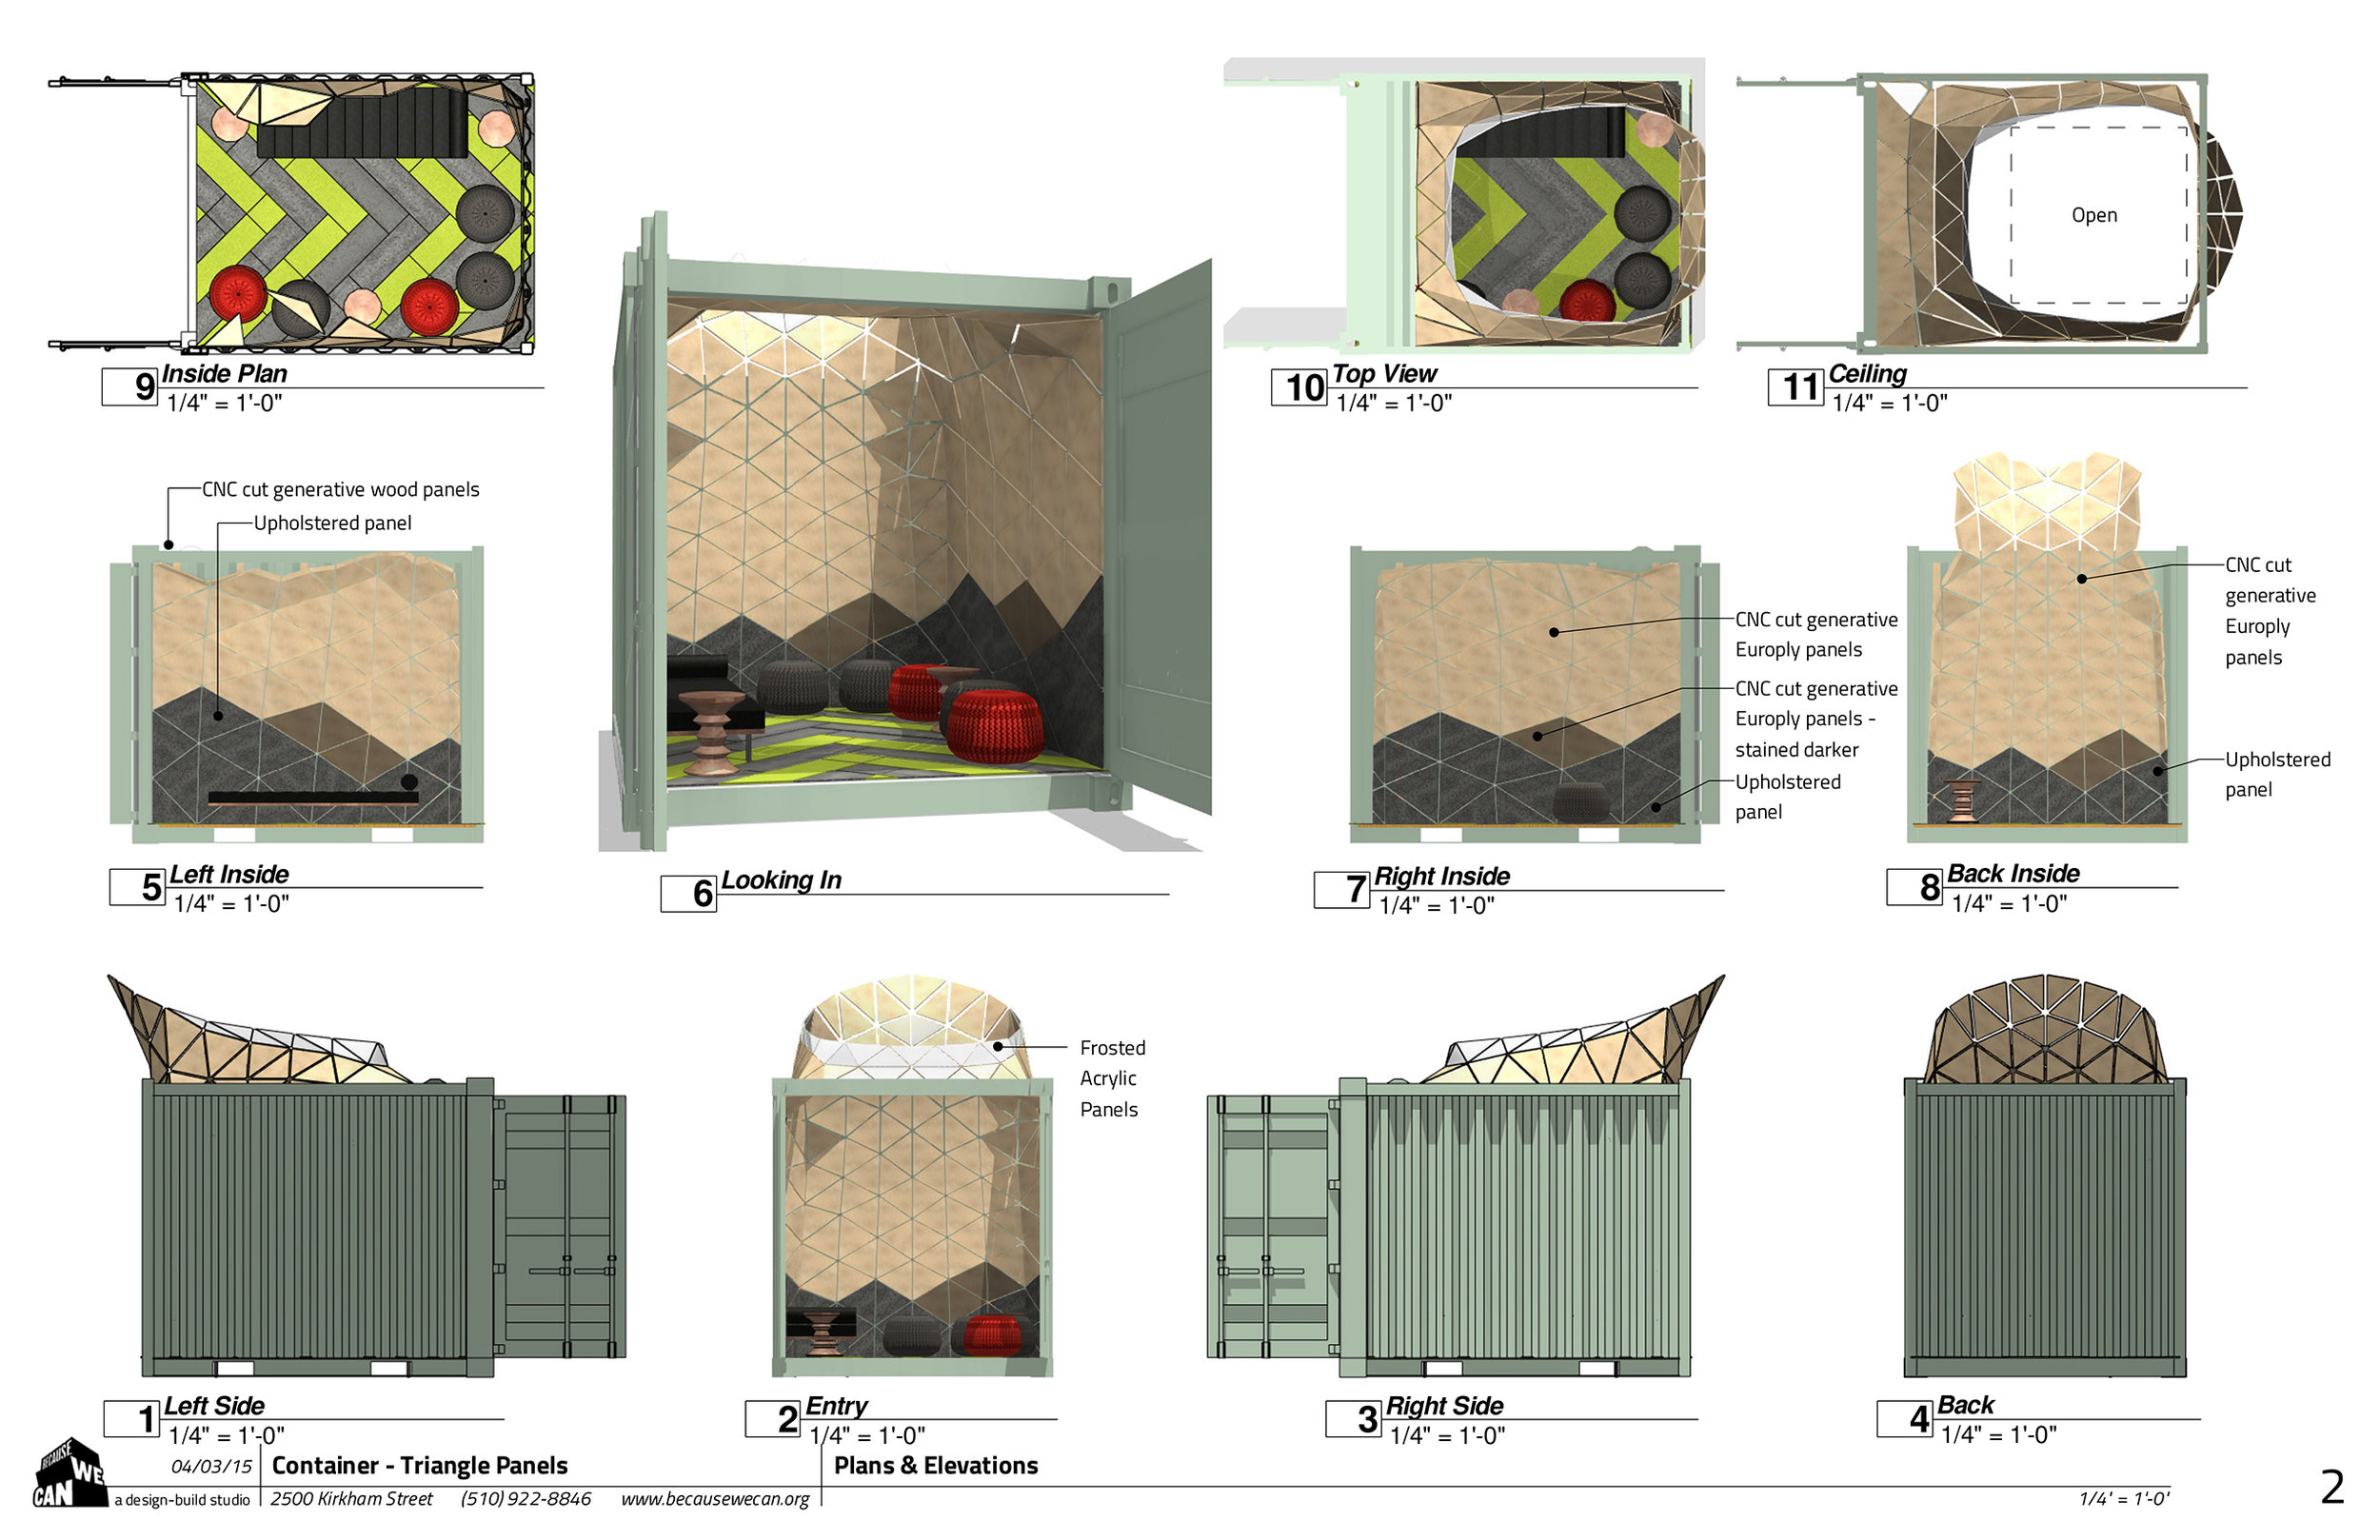 Schematic drawings for client review for the CNC cut generative Europly panels design.